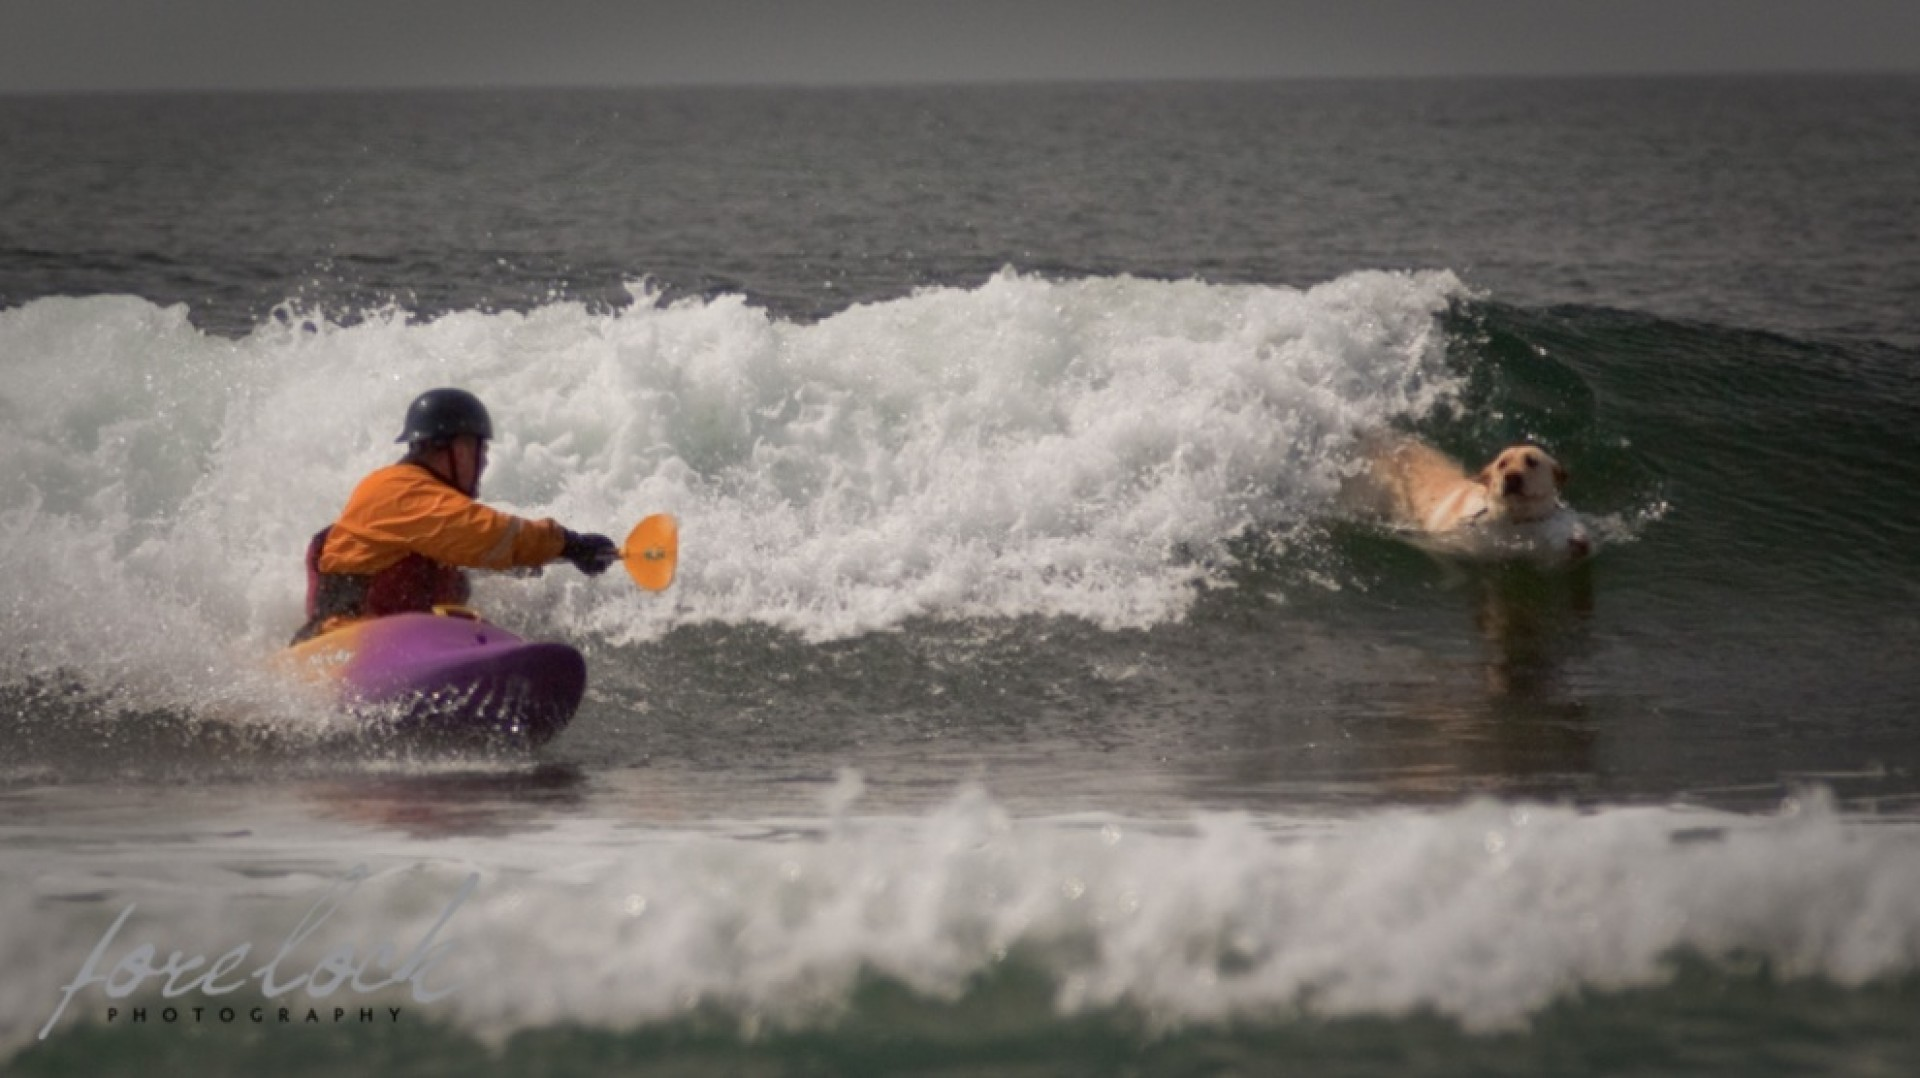 SurfKayakCancuk's photo of Lawrencetown